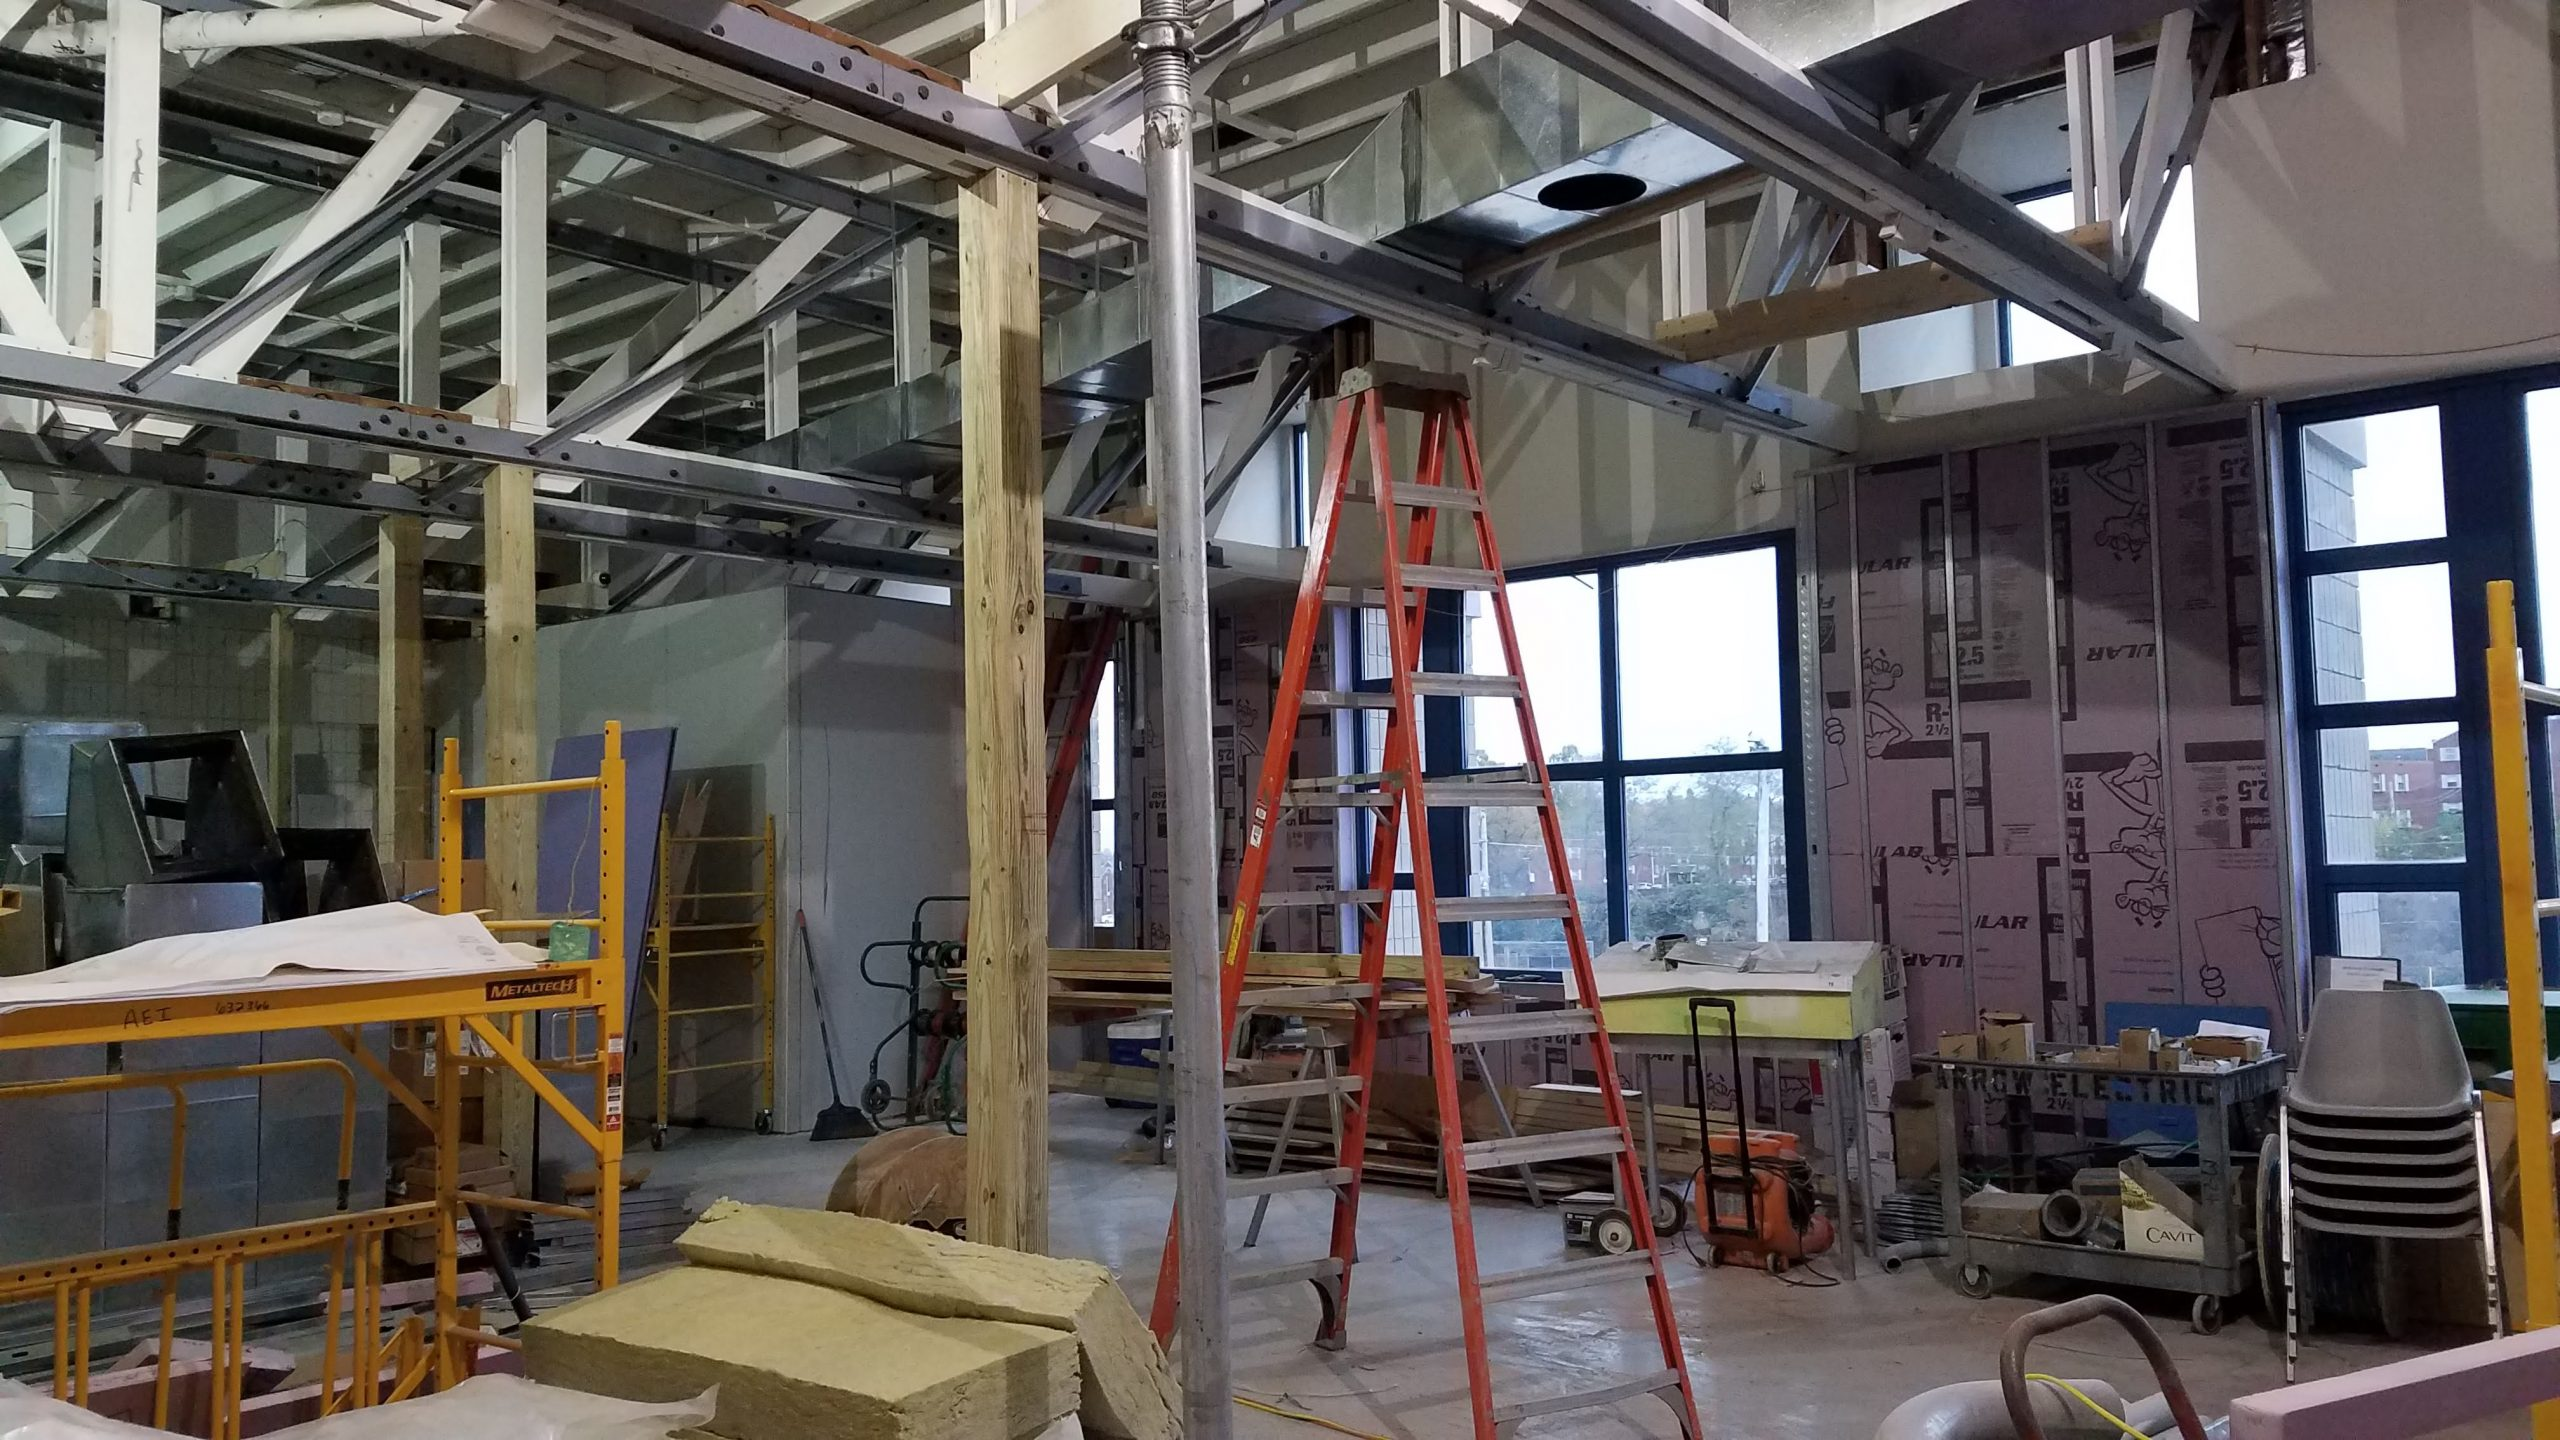 Organized chaos–new steel roof beams going in.